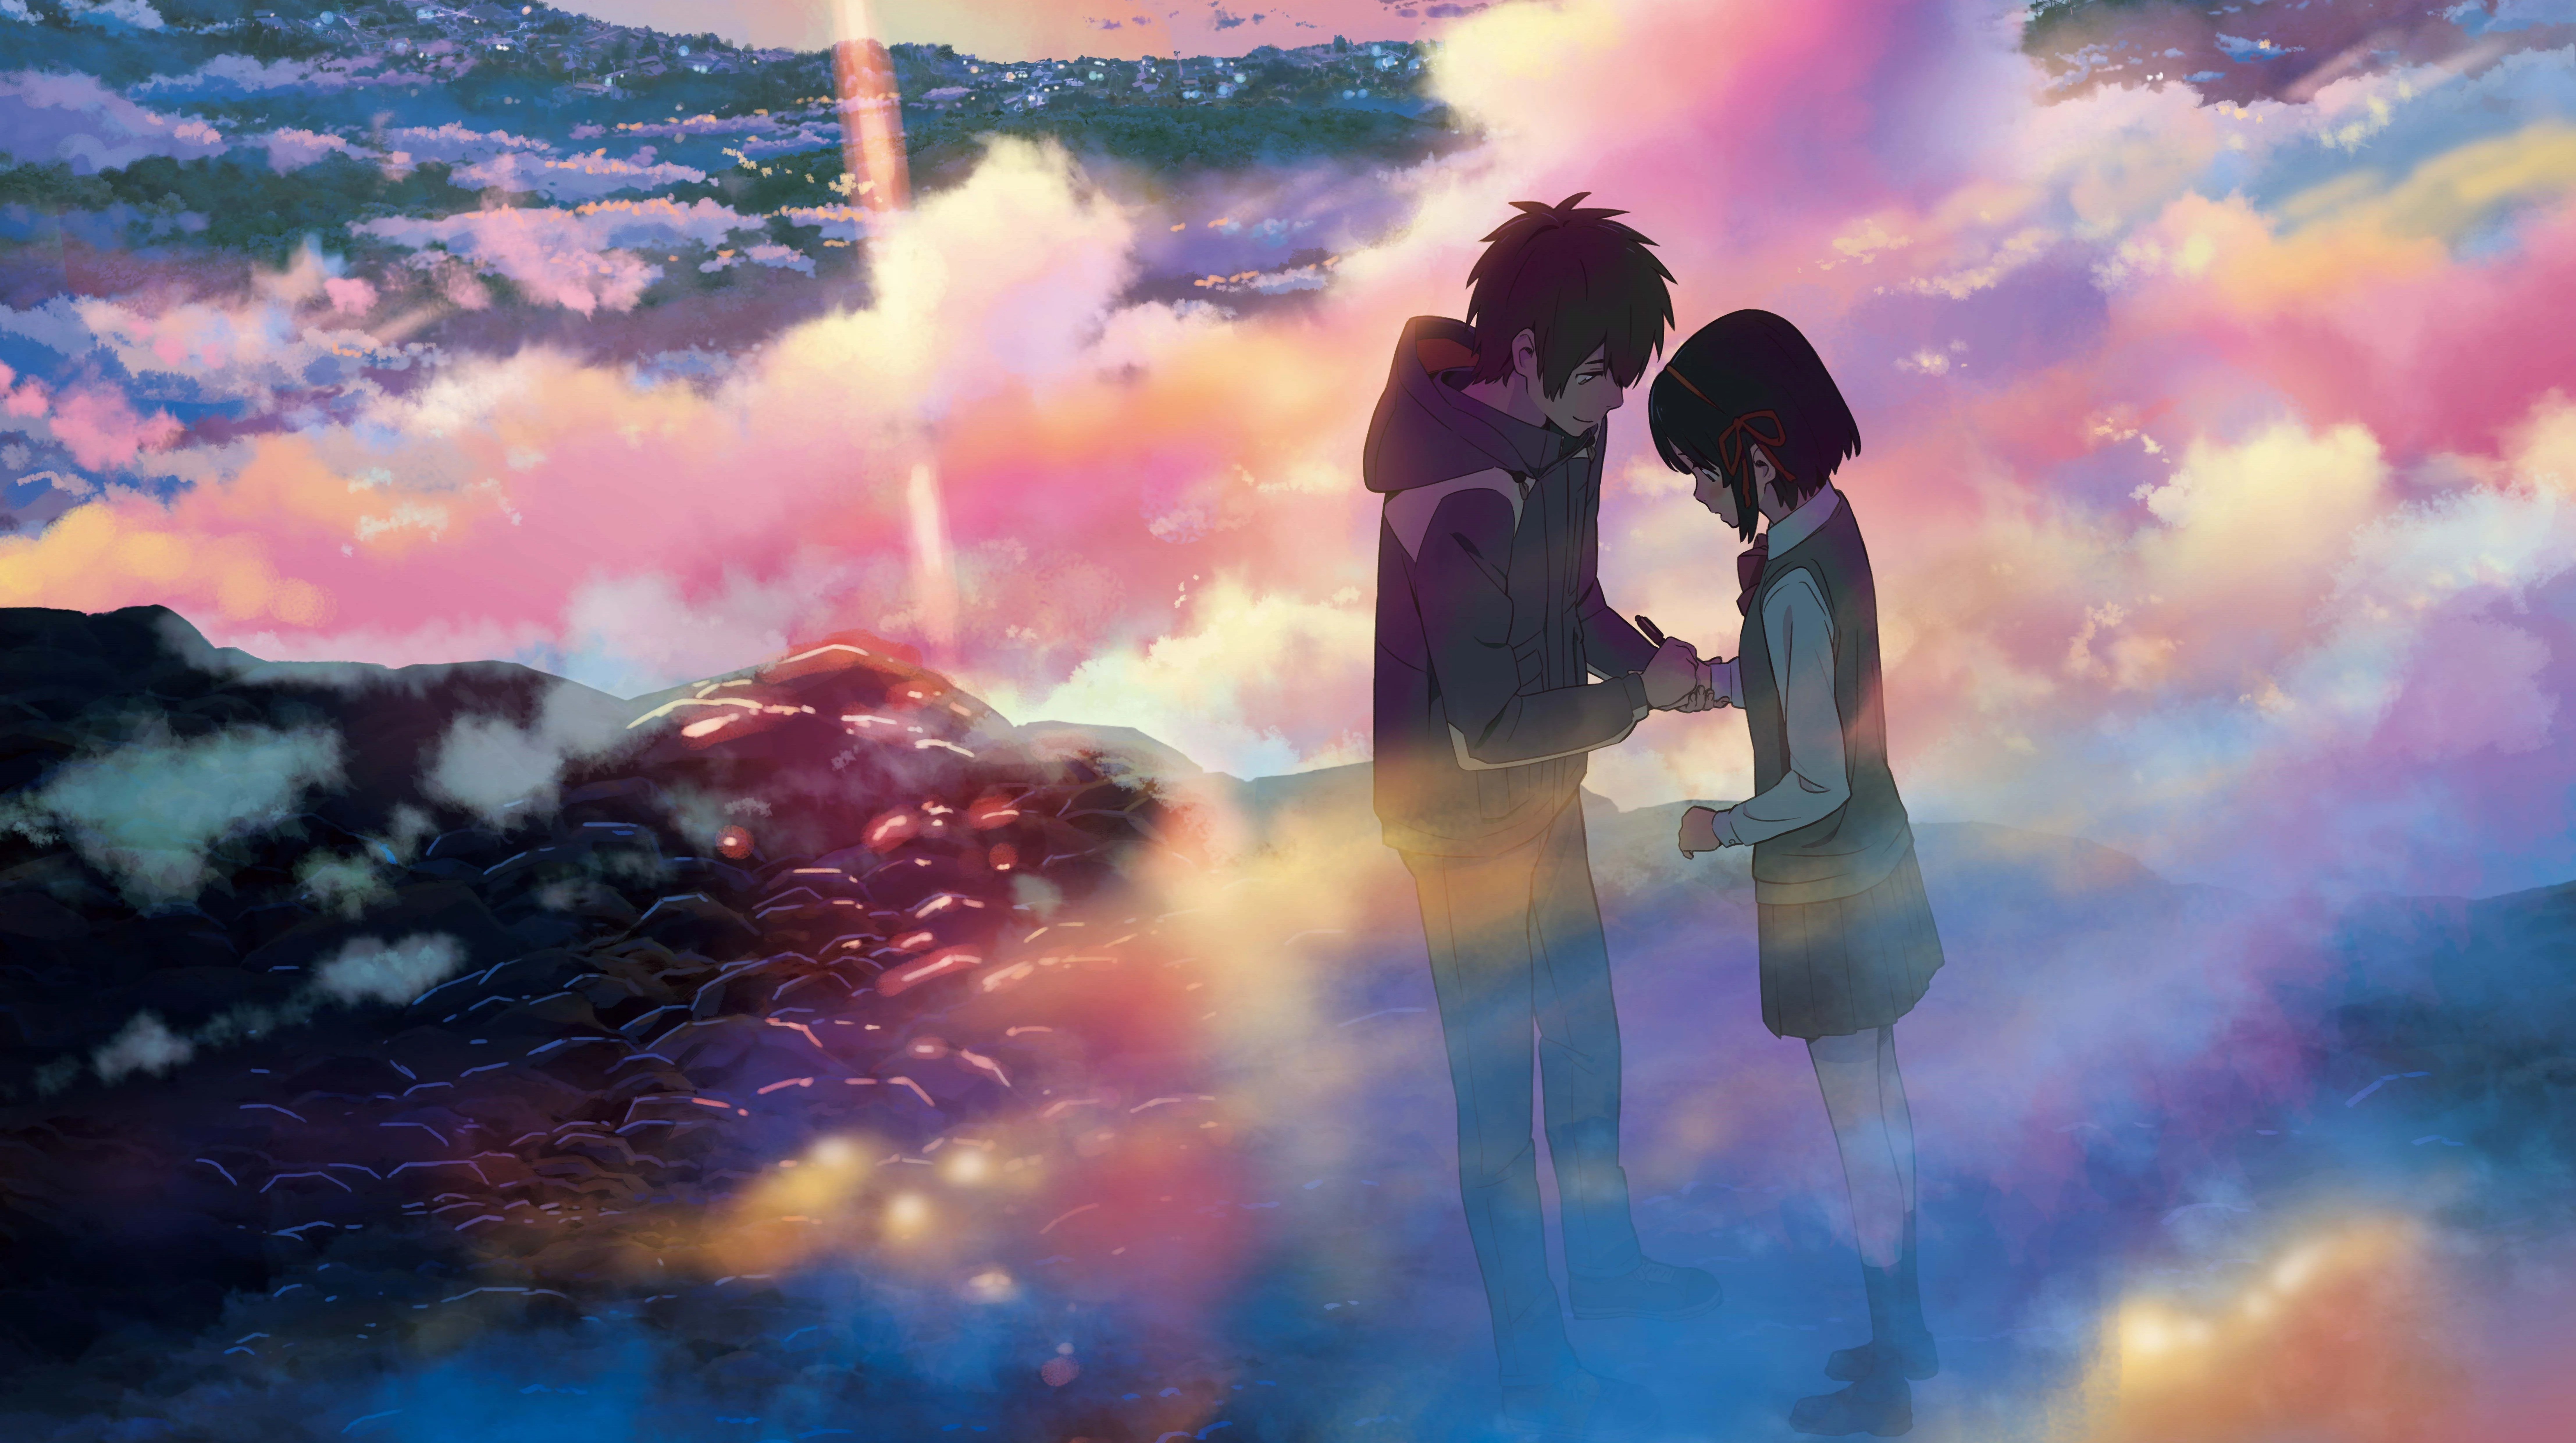 Your name 1080p, 2k, 4k, 5k hd wallpapers free download, these wallpapers are free. Your Name Anime Wallpapers - Top Free Your Name Anime ...